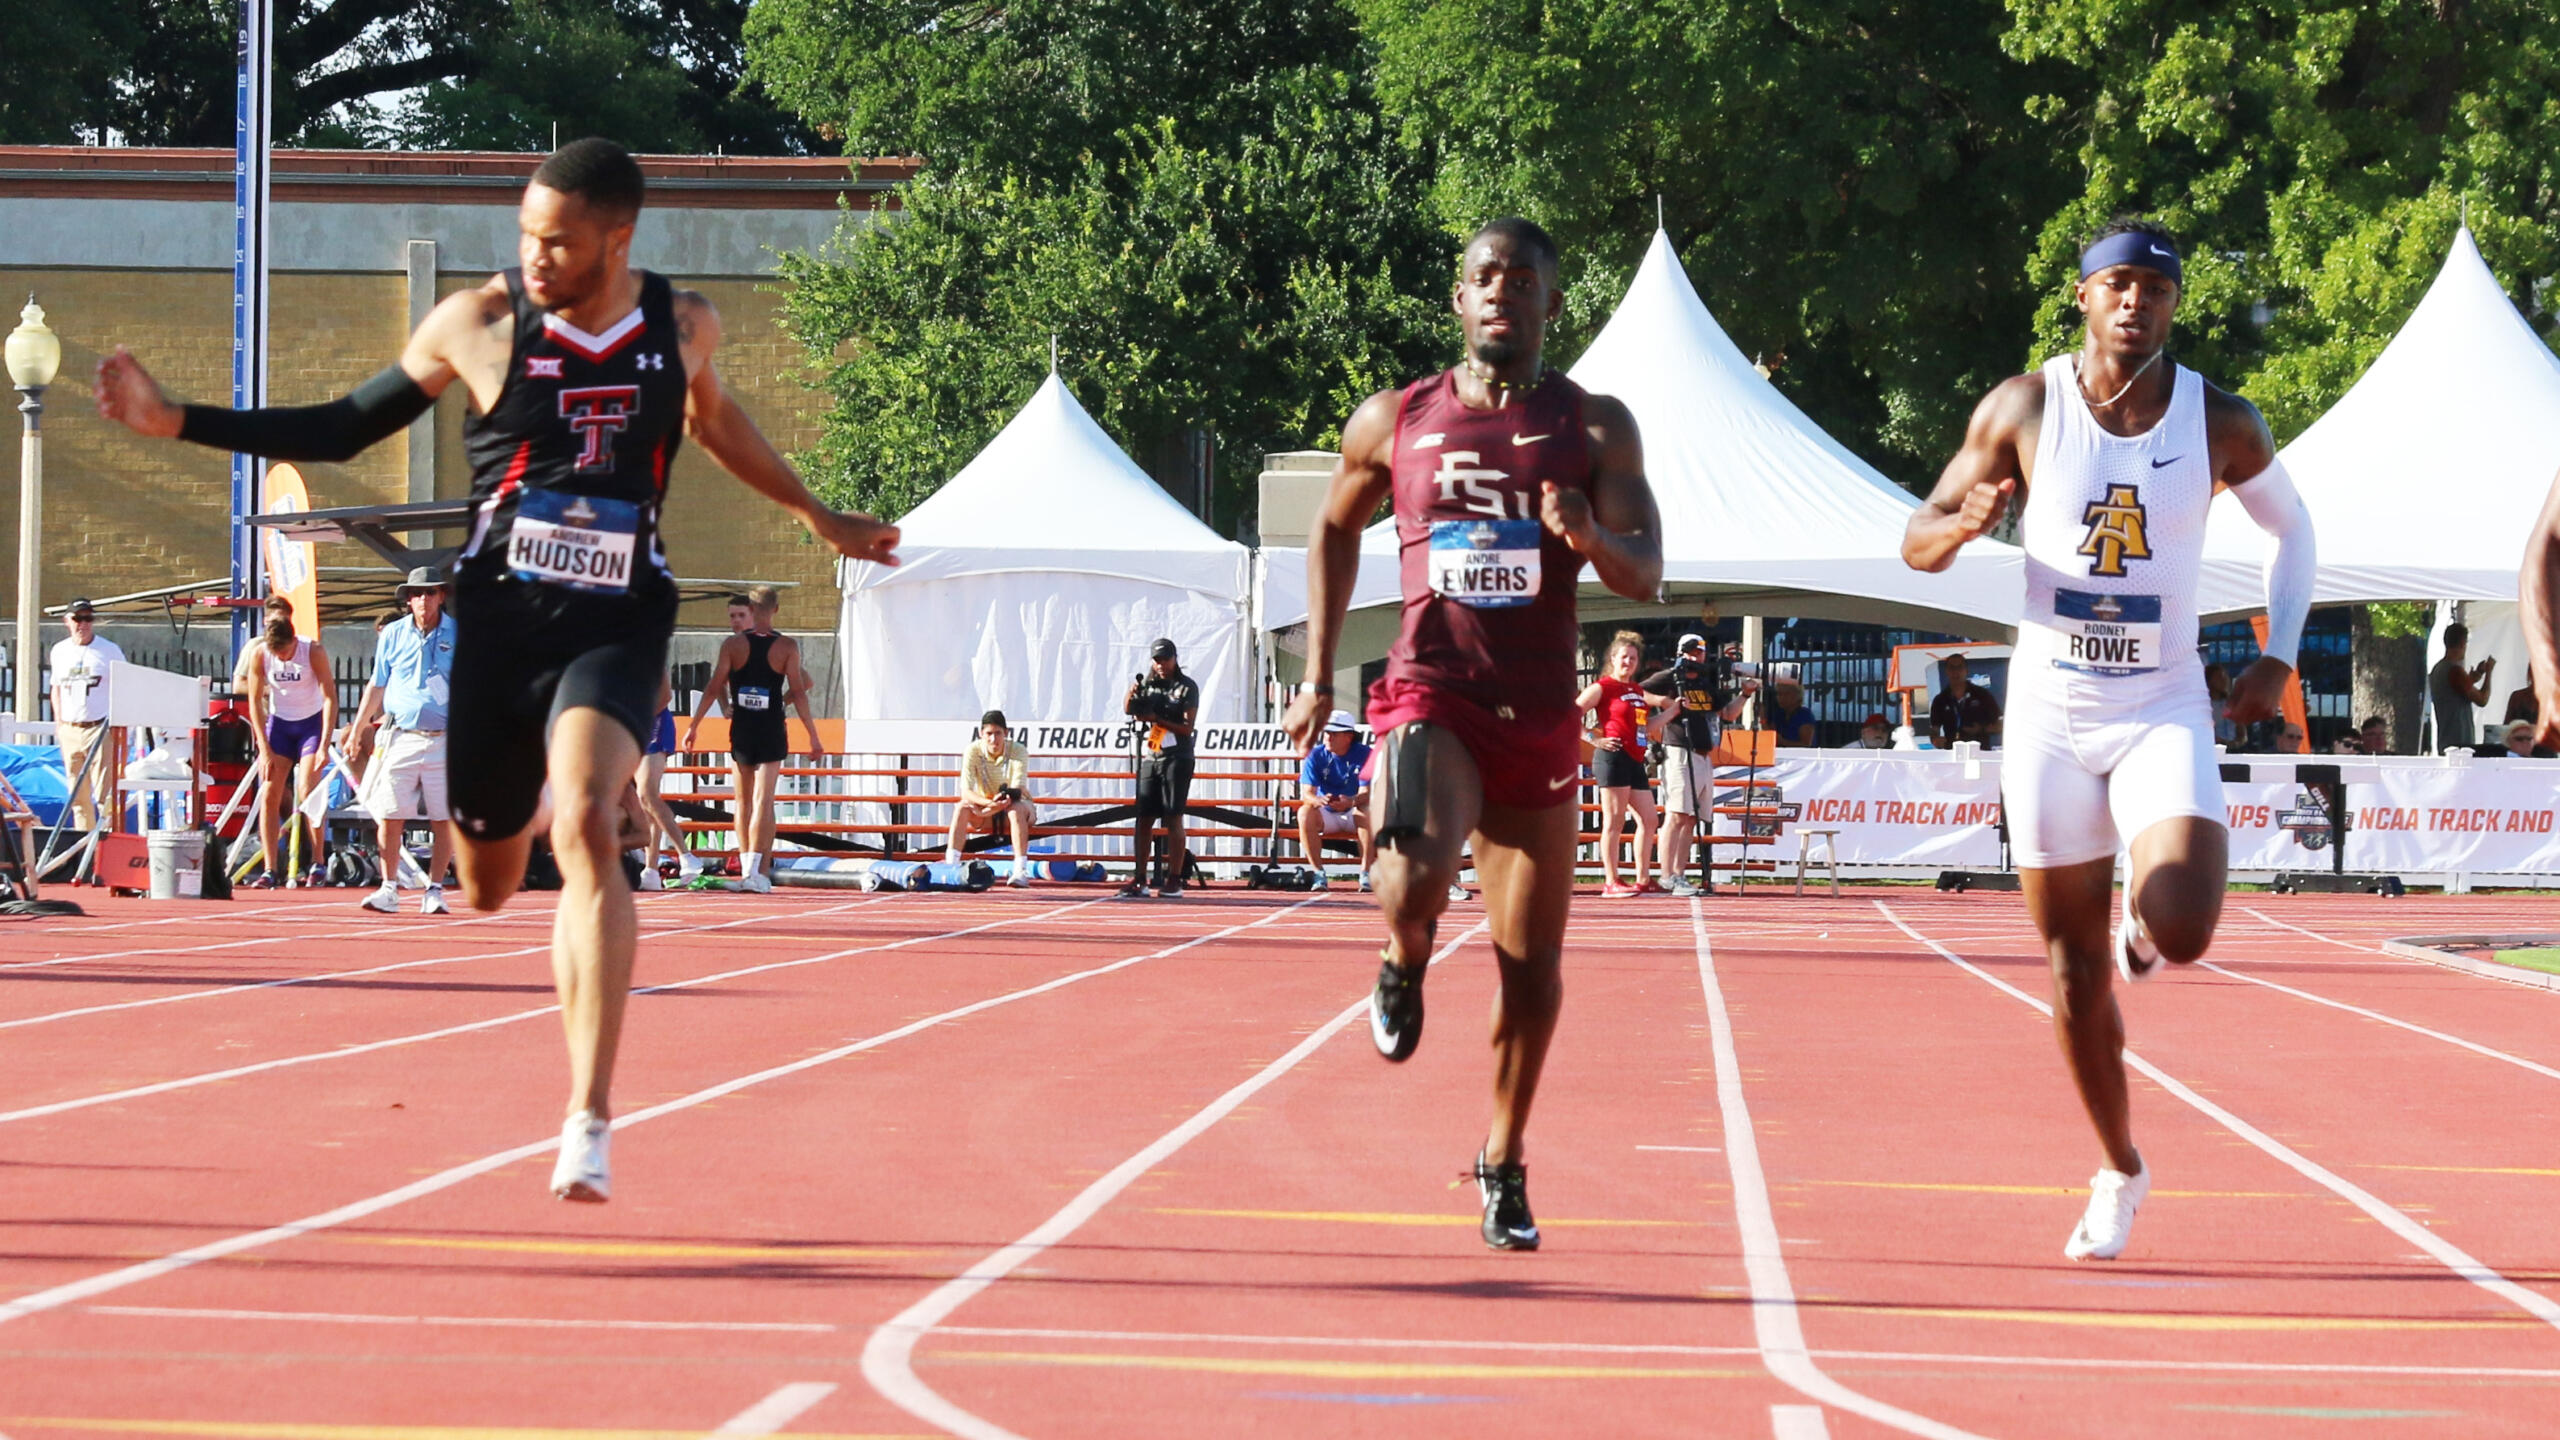 Record-Setting Relay, Rincher's 100 Lead Day 1